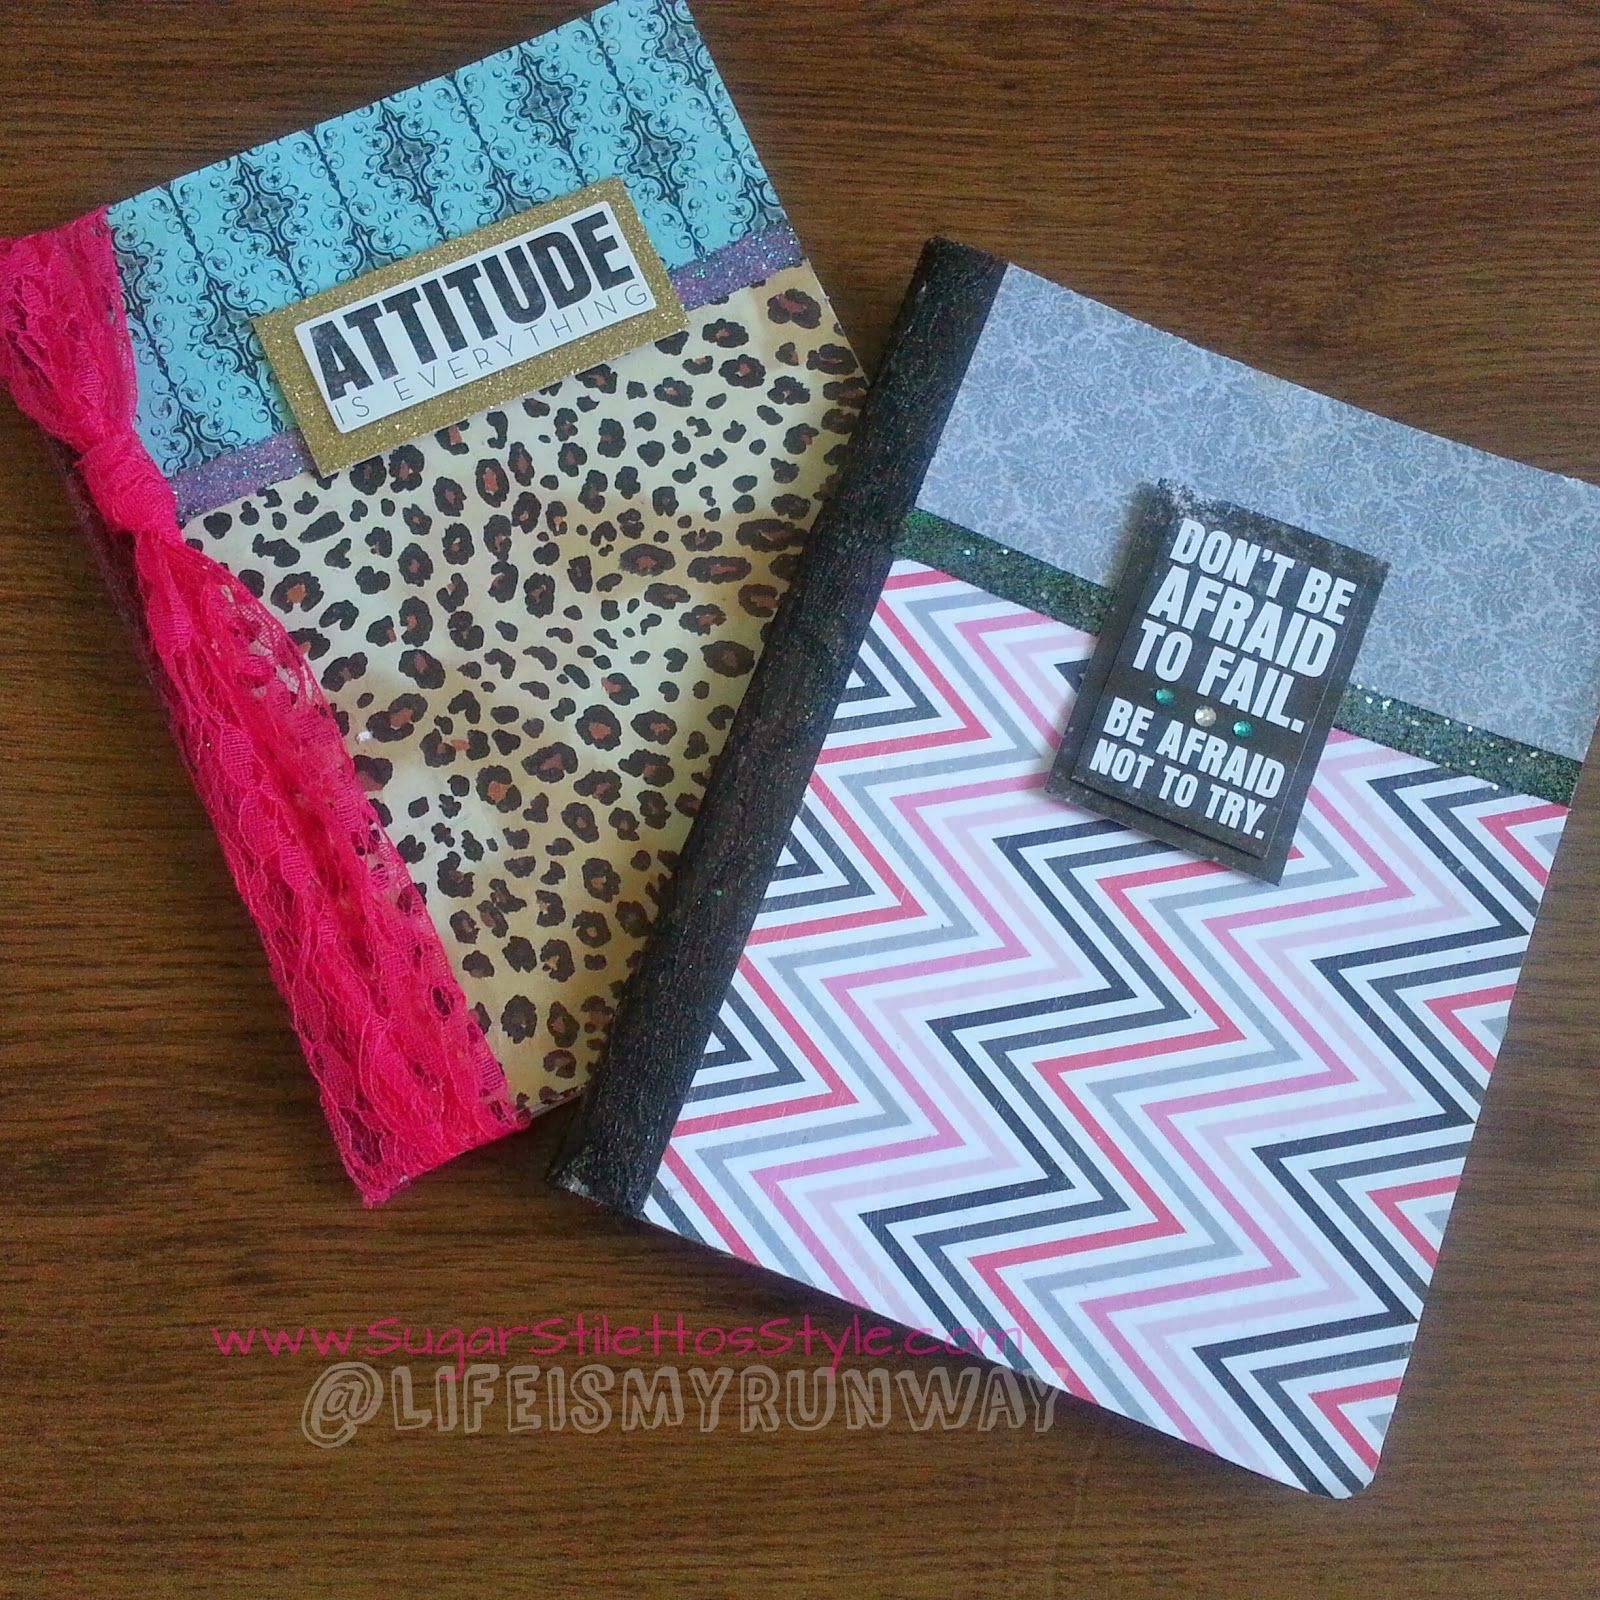 Diy Notebook Cover Ideas : Diy spiral notebook cover pixshark images